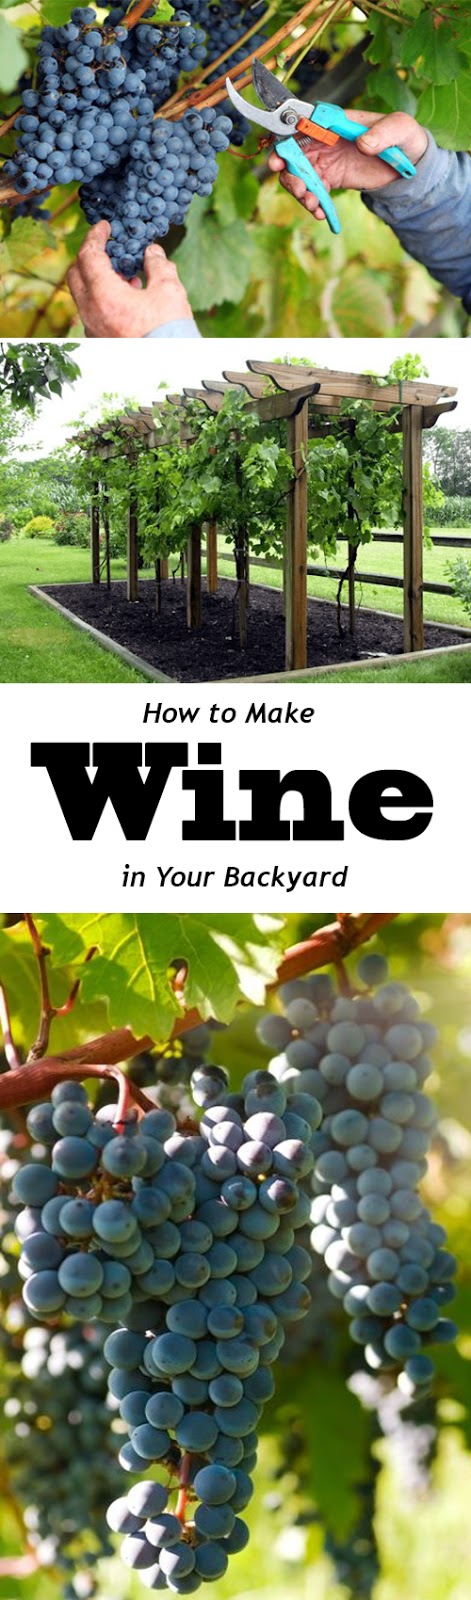 How to Grow Grapes, Growing Your Own Grapes - Everything ...